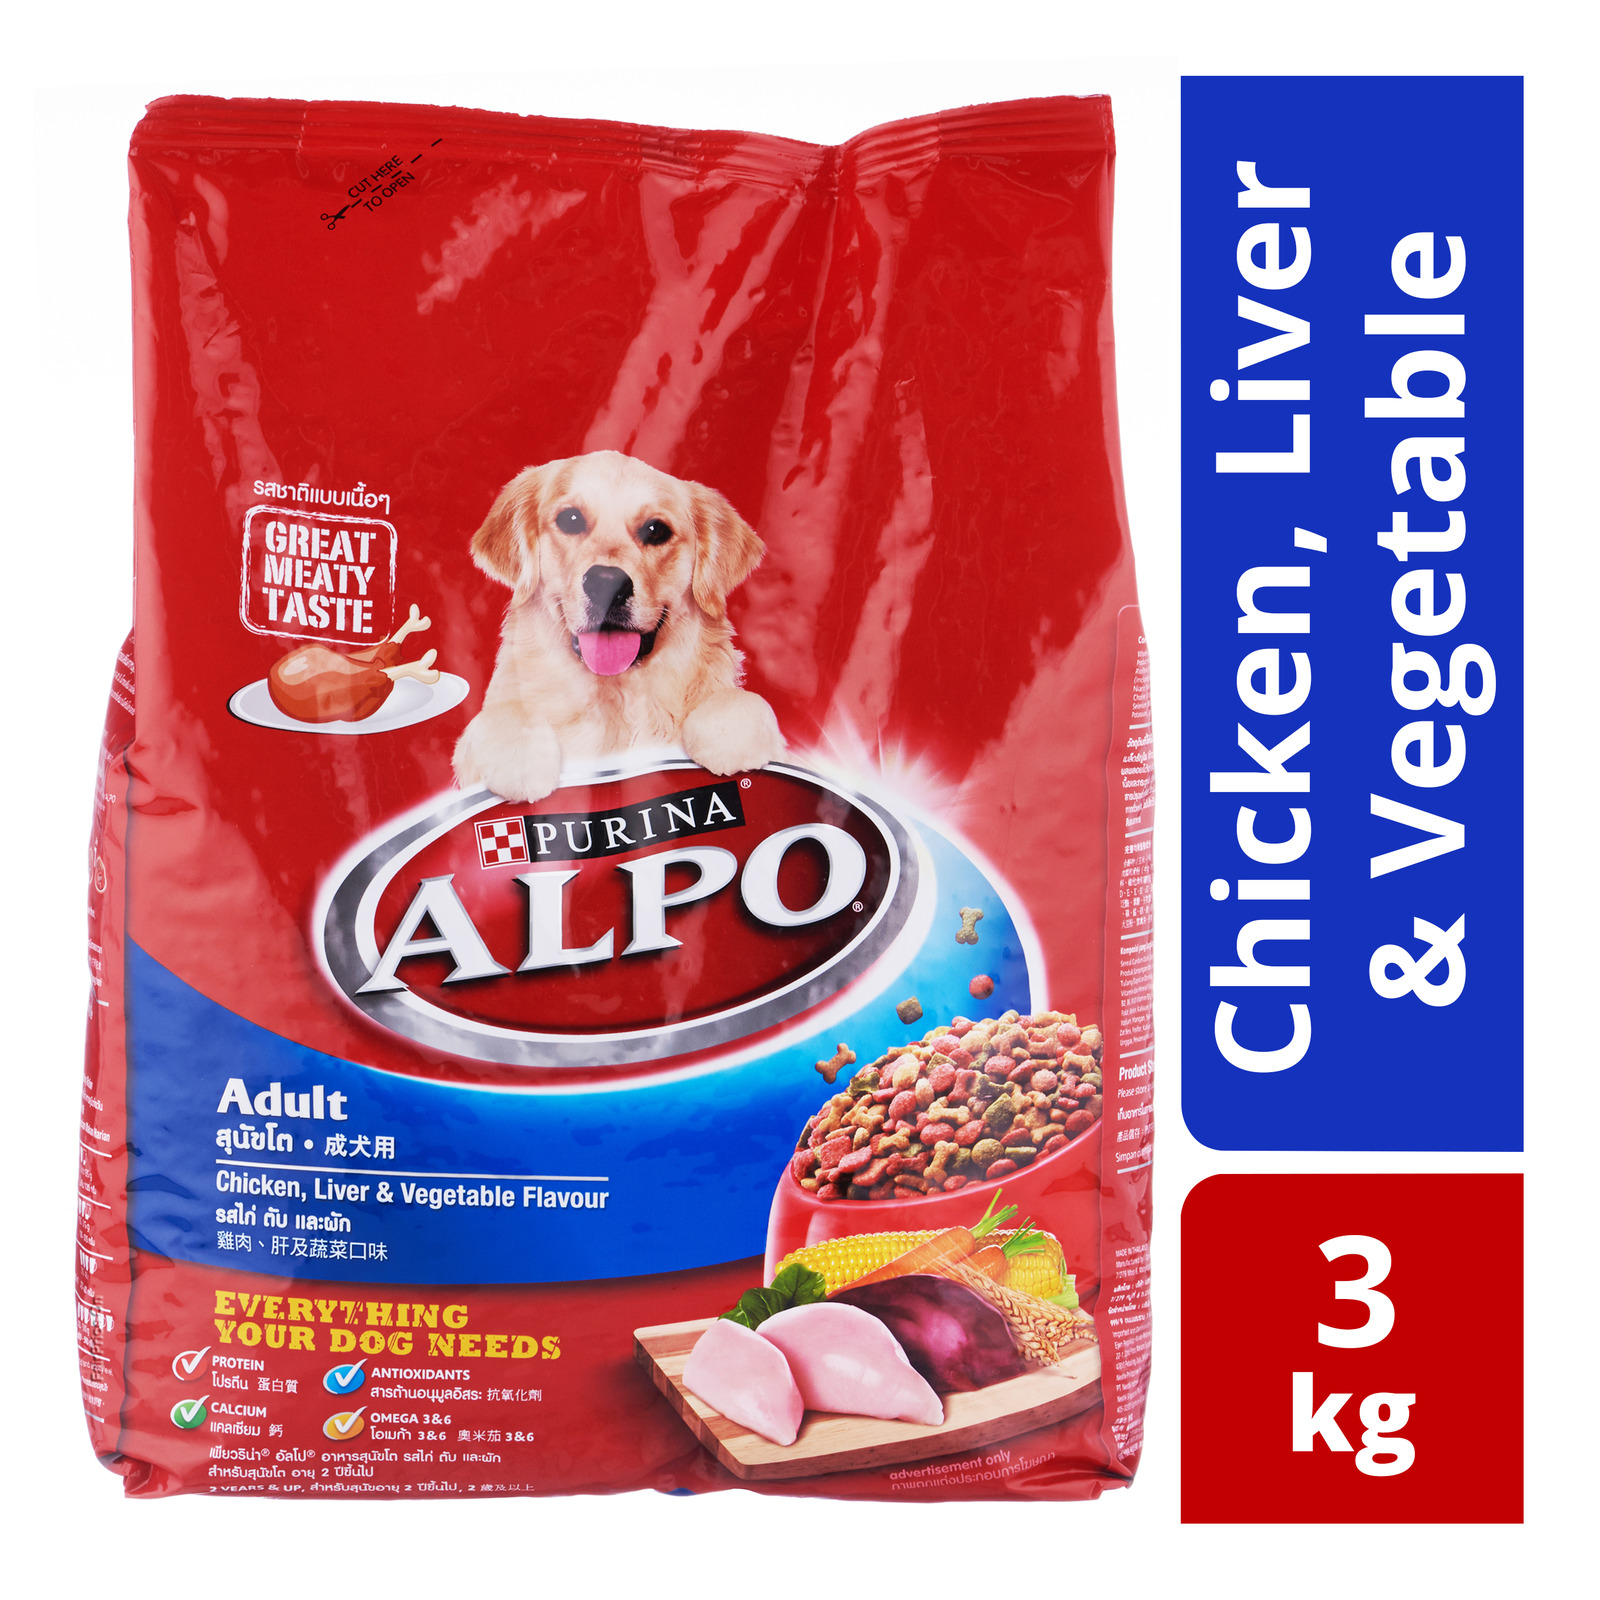 Purina Alpo Adult Dog Food - Chicken, Liver & Vegetable